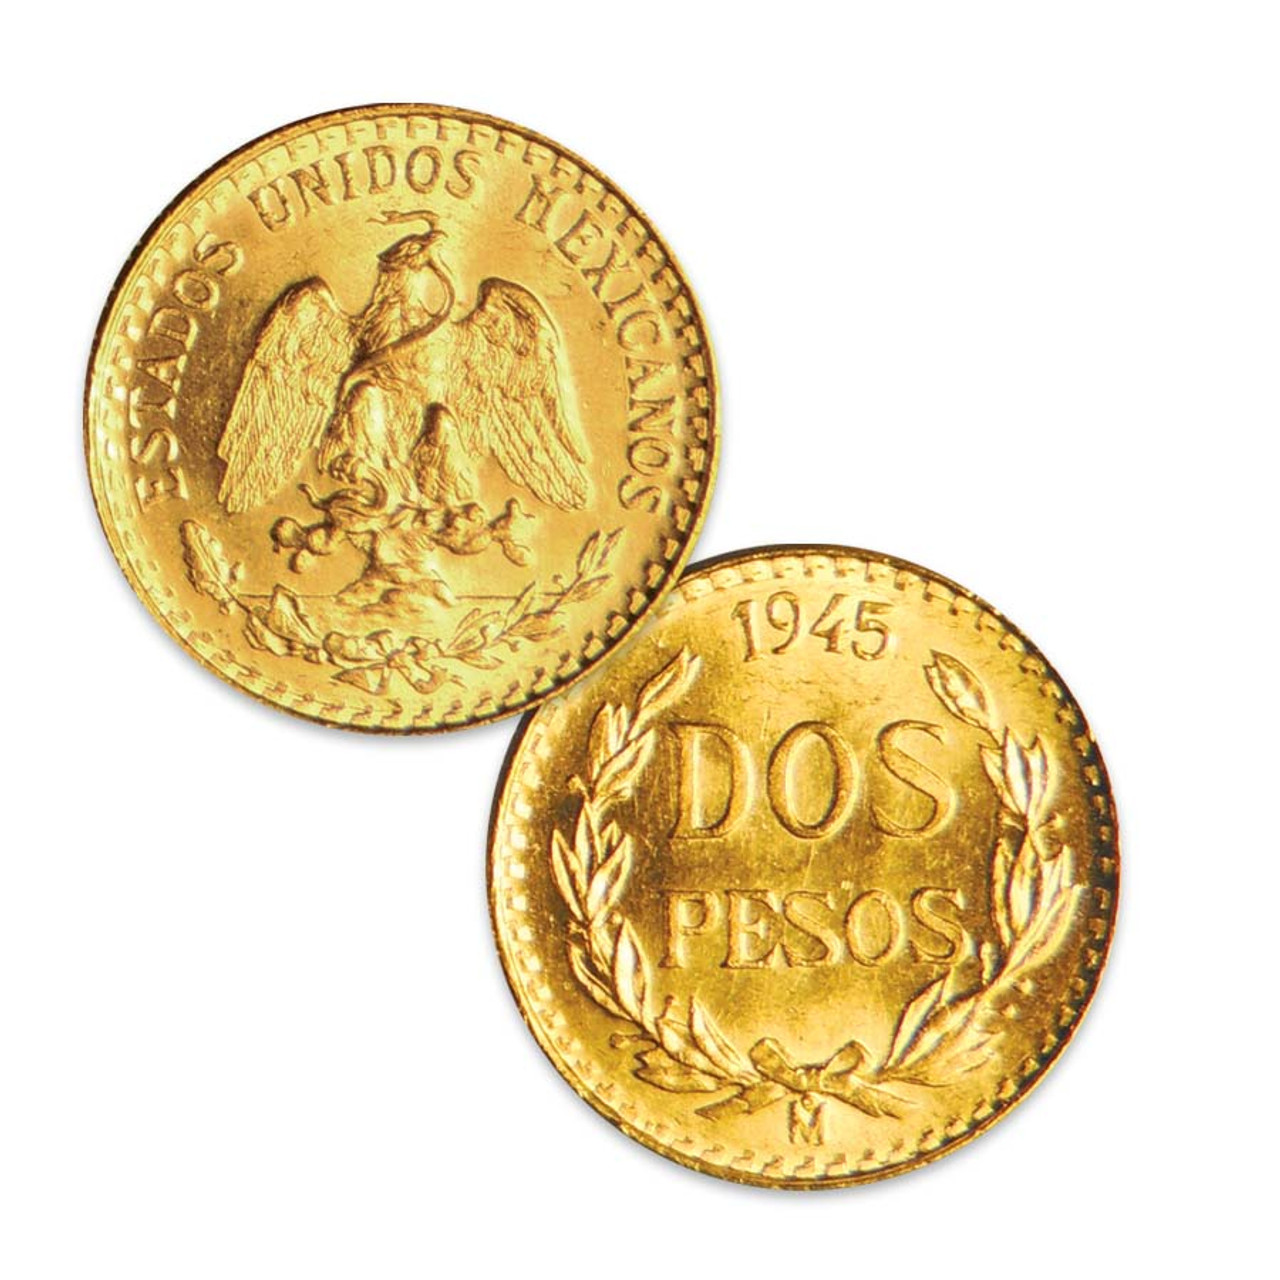 Mexico 1945 Gold 2 Pesos About Uncirculated to Brilliant Uncirculated